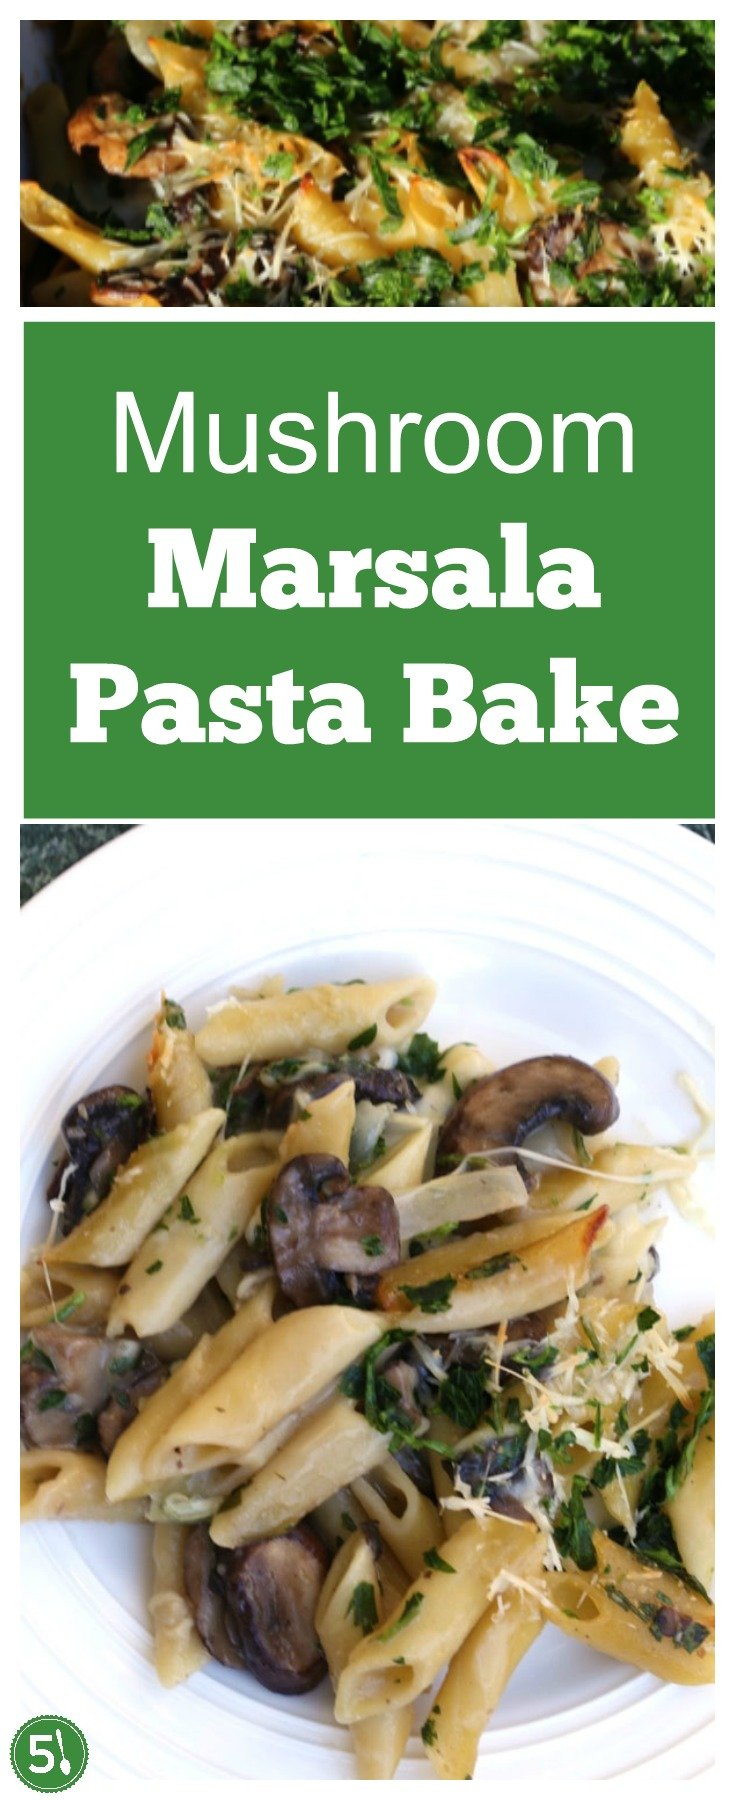 This delicious mushroom marsala pasta bake with sliced mushrooms, marsala wine, chopped mozarella and fresh Italian parsley is so creamy and flavorful.